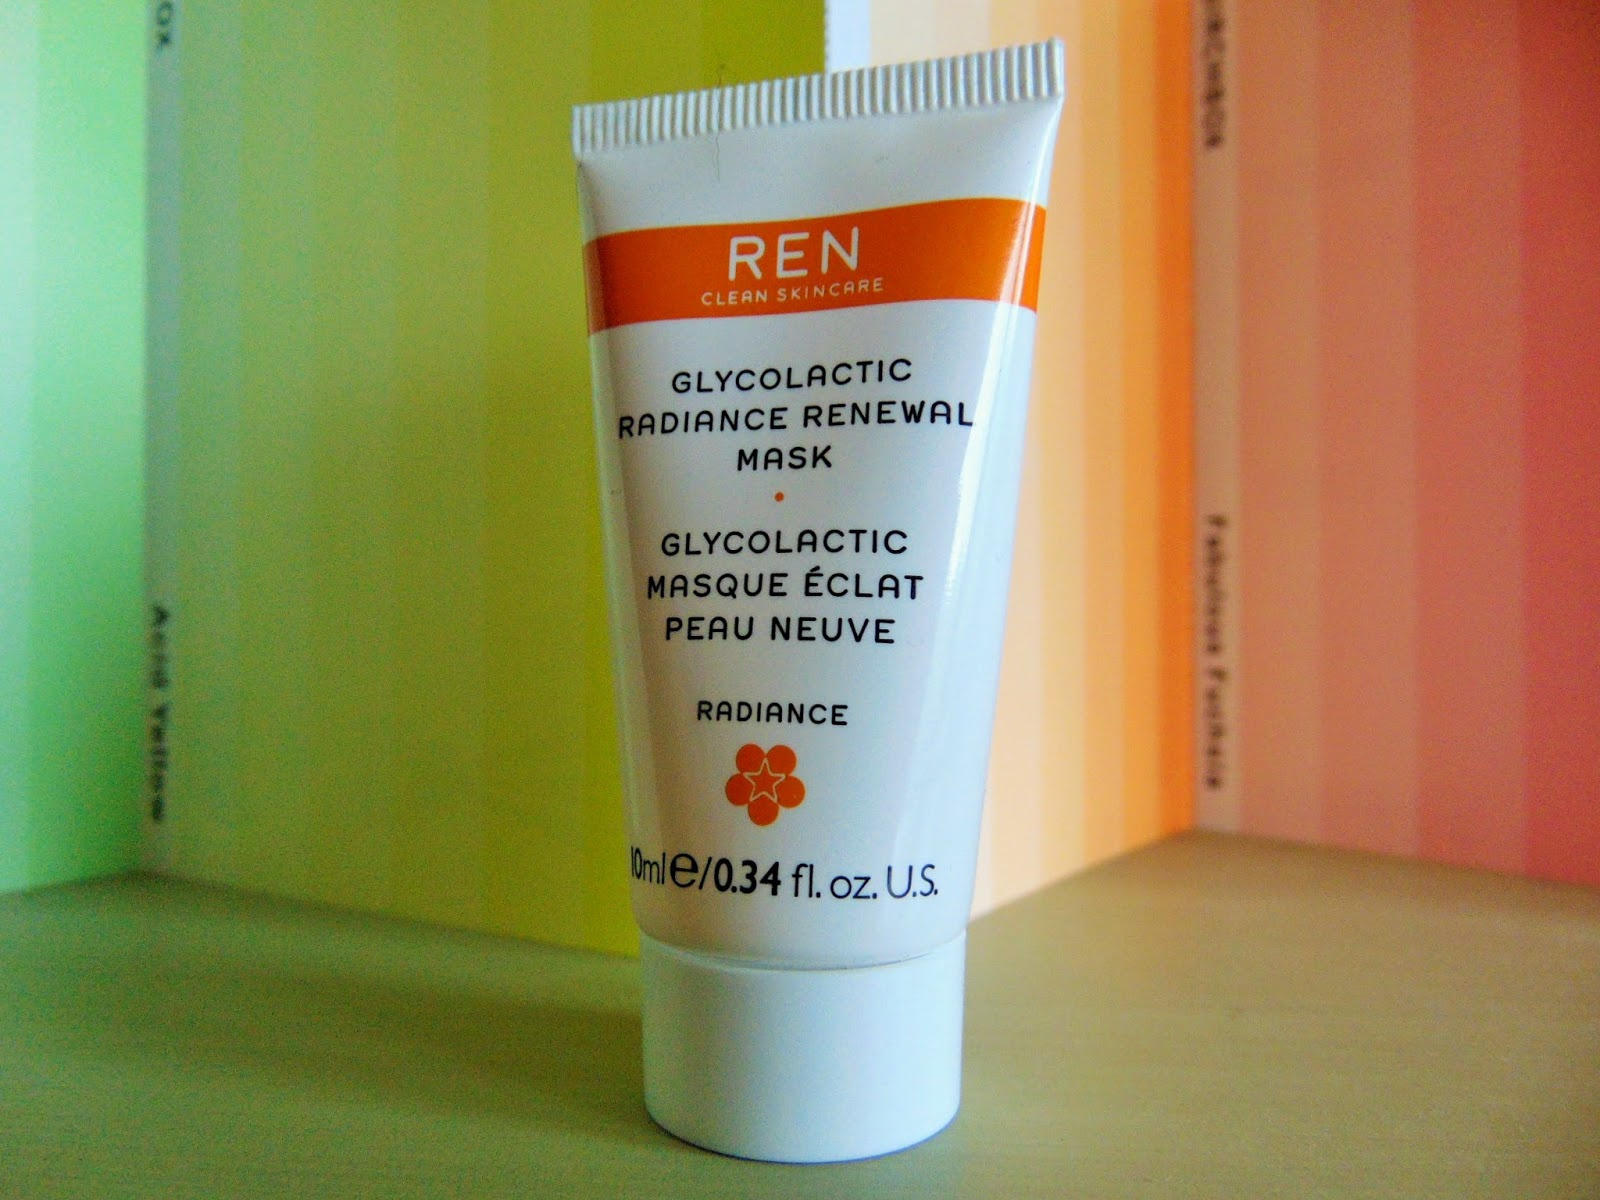 Birchbox review March habitat Ren glycolactic radiance renewal mask